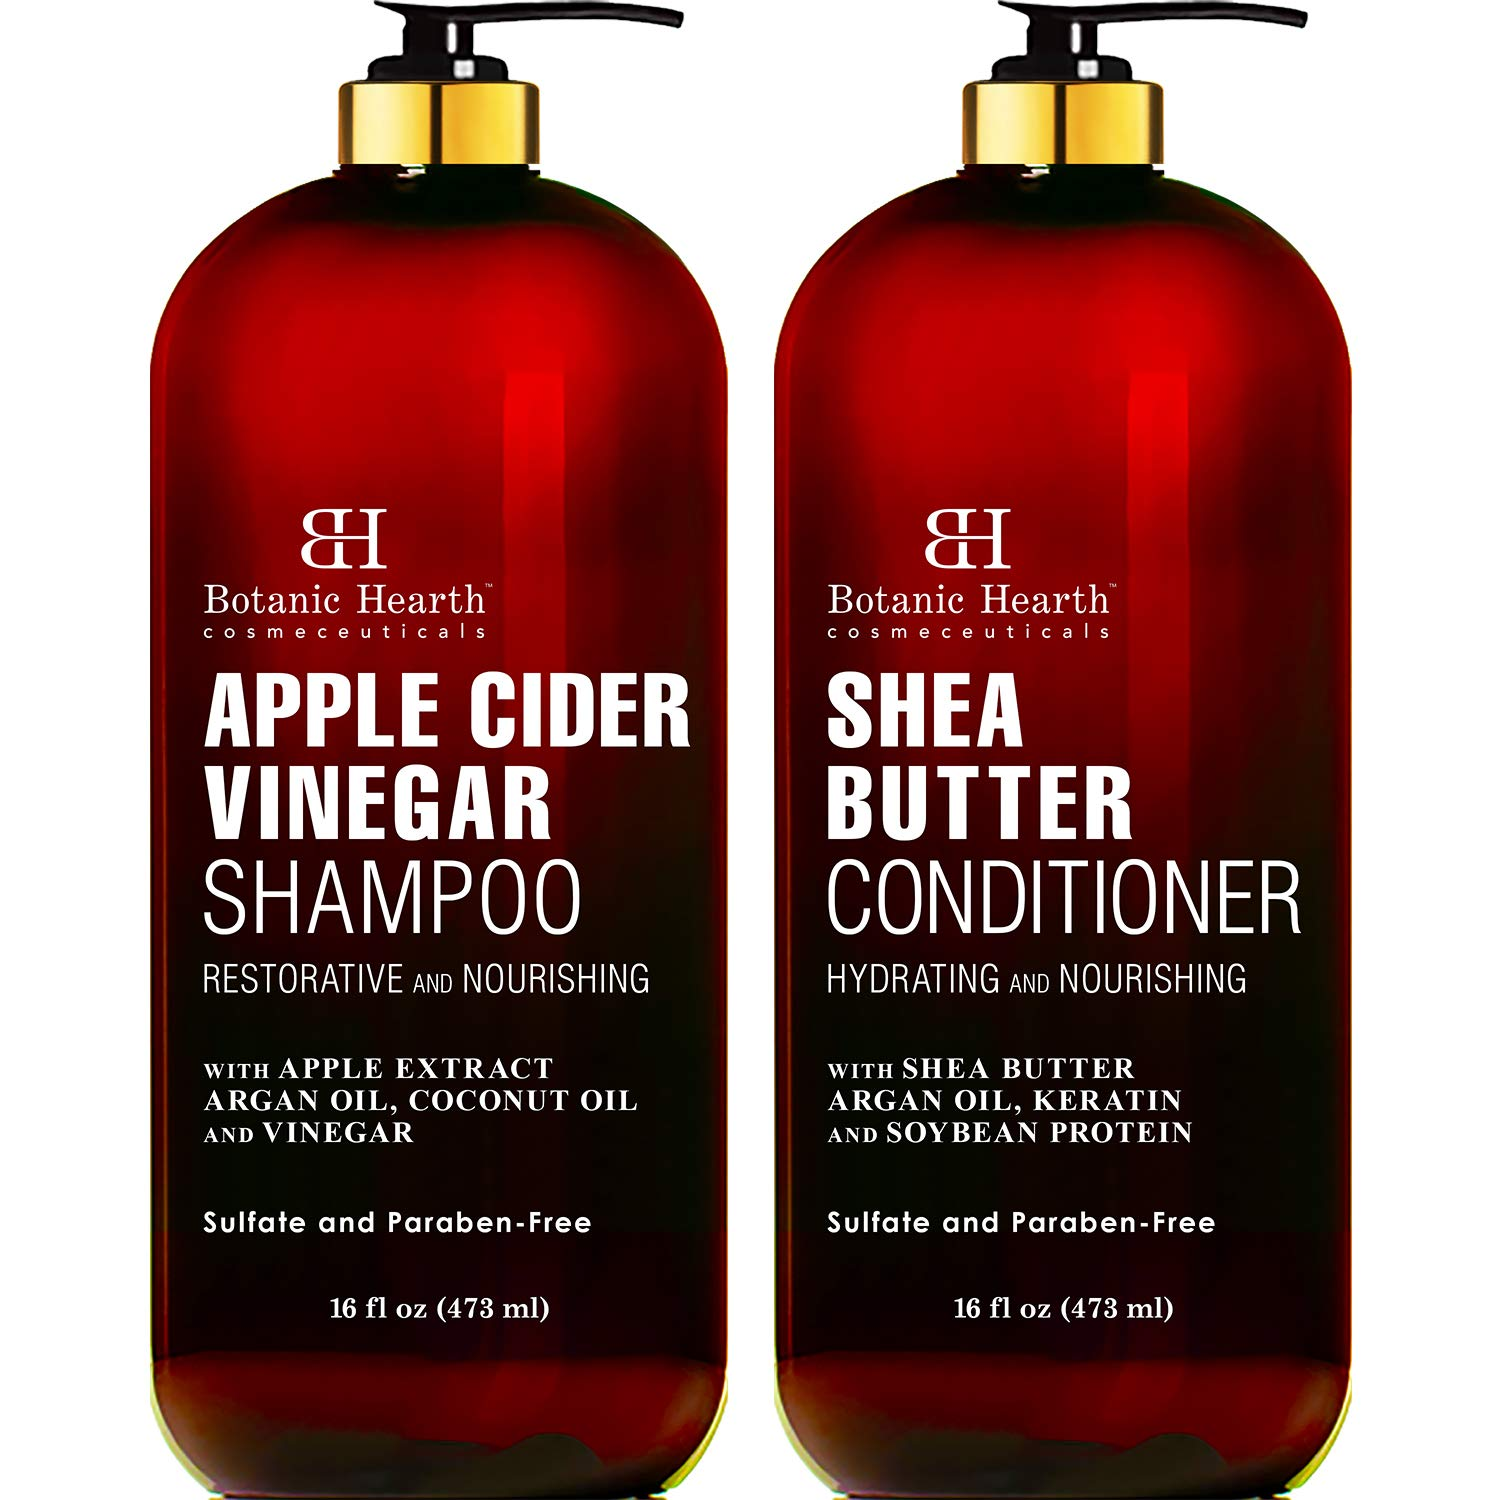 BOTANIC HEARTH Apple Cider Vinegar Shampoo & Shea Butter Conditioner Set, Color Safe, Sulfate Free Shampoo and Conditioner Set Fights Itchy Scalp, Dandruff & Frizz - (Packaging May Vary),16 fl oz x 2